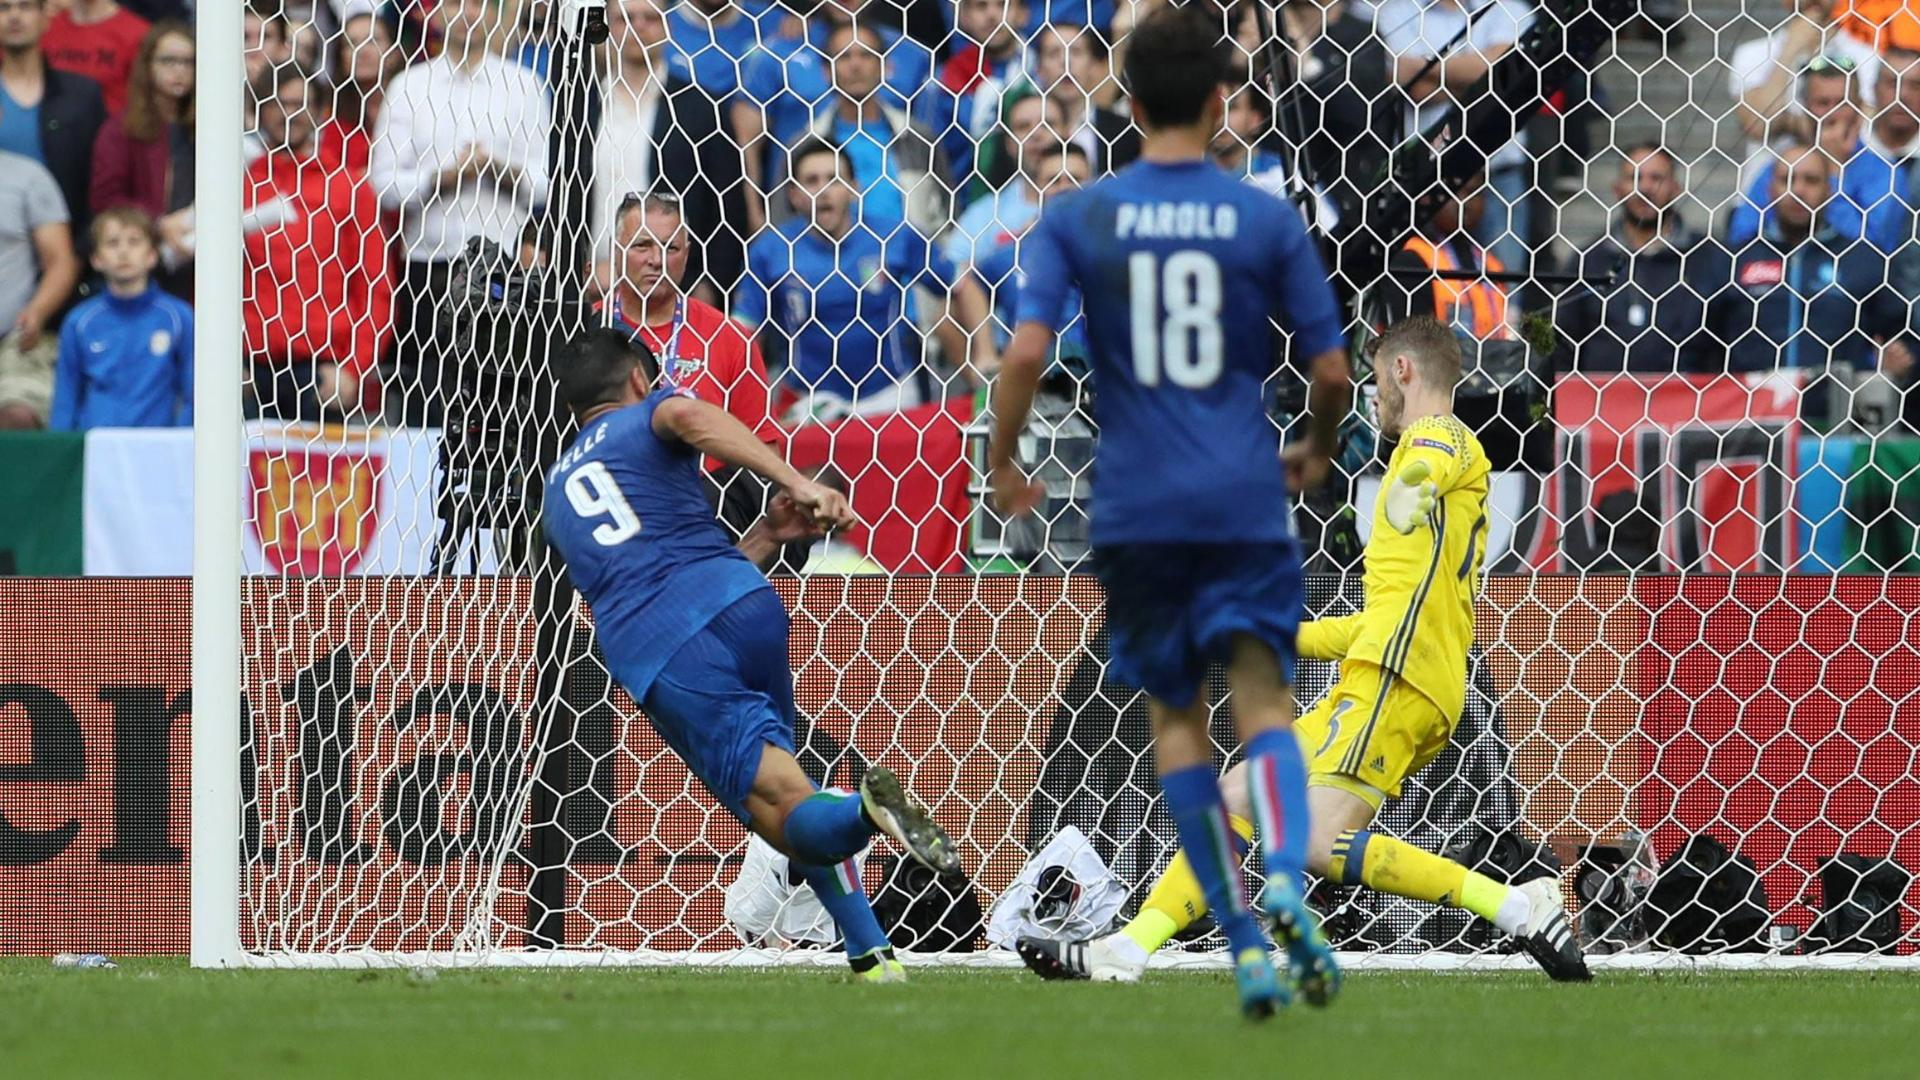 Pelle scores in stoppage time to secure Italy's win